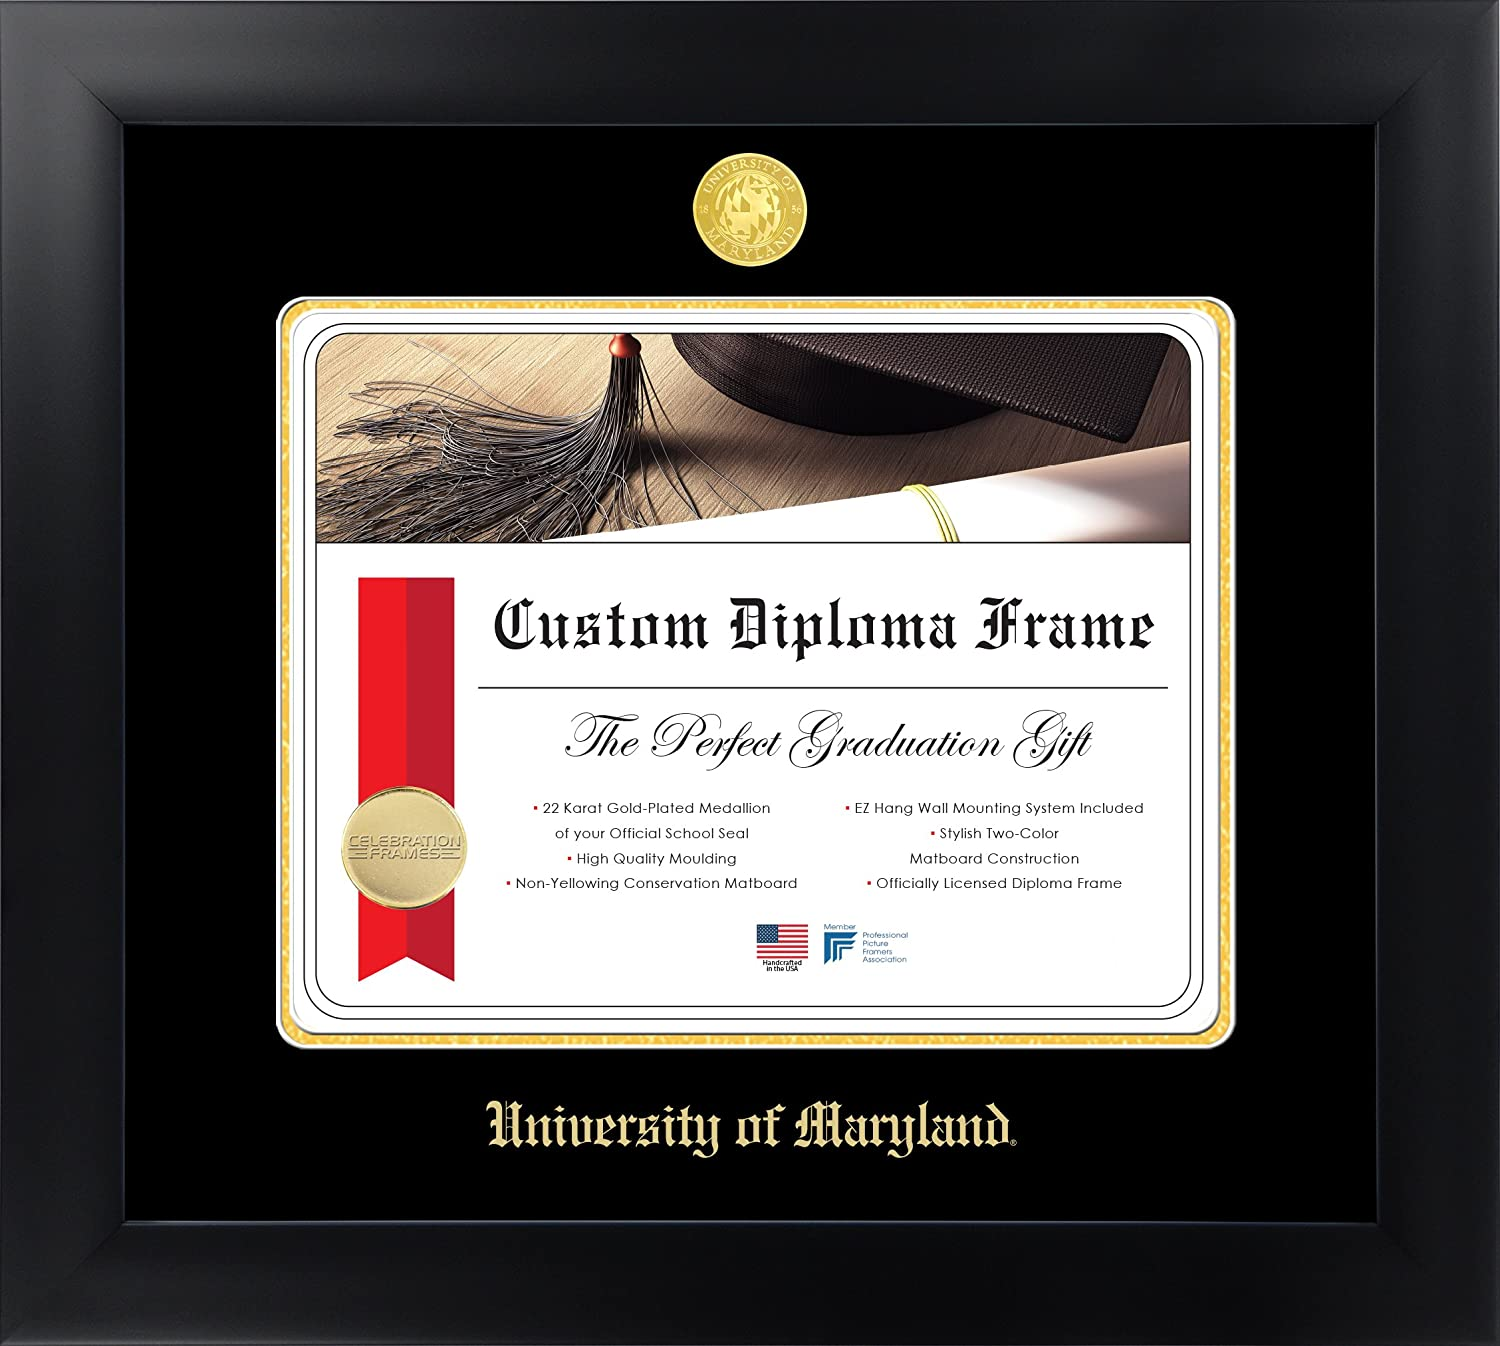 Amazon.com: Celebration Frames University of Maryland 13 x 17 Matte ...